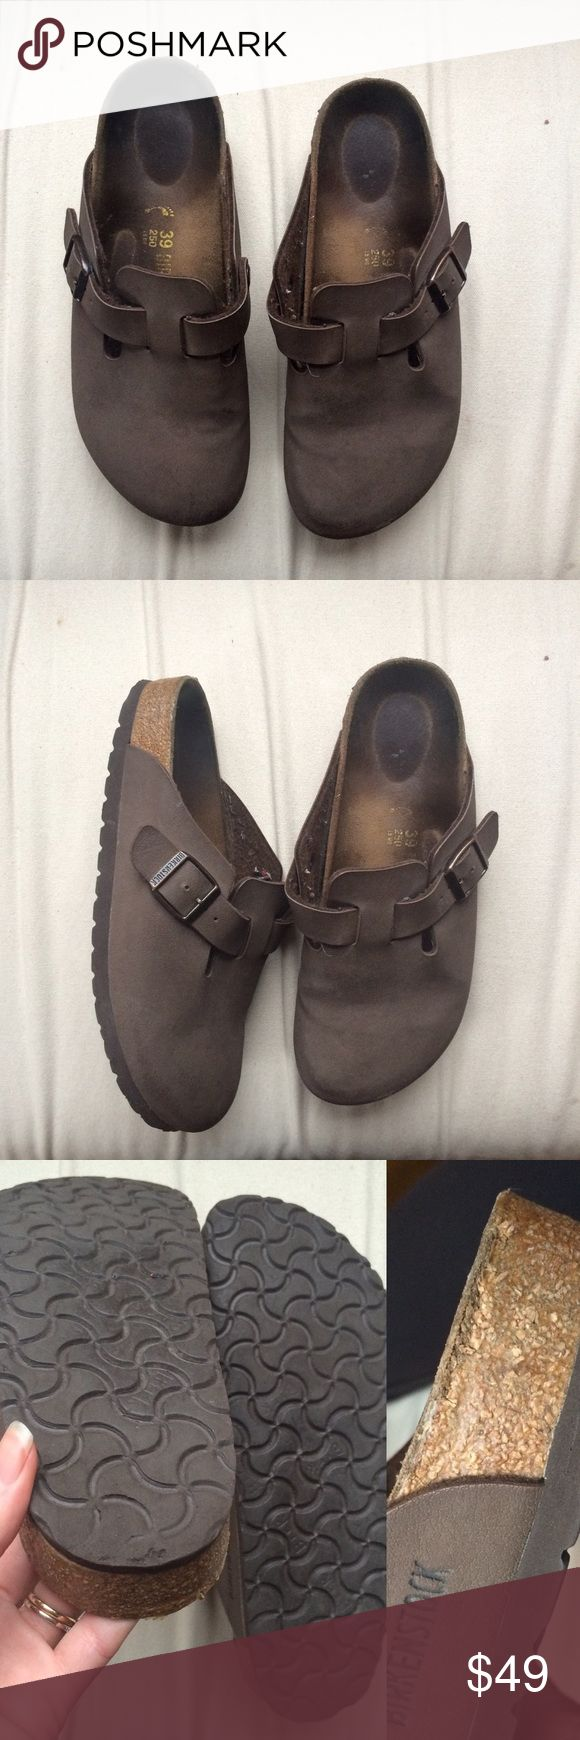 EUC Dark Brown Birkenstock Clogs Beautiful chocolate brown smooth leather clogs. Great condition, no scuffs. Some wear on the edge of the heels as shown in 3rd photo. Super comfy and these things last forever! Birkenstock Shoes